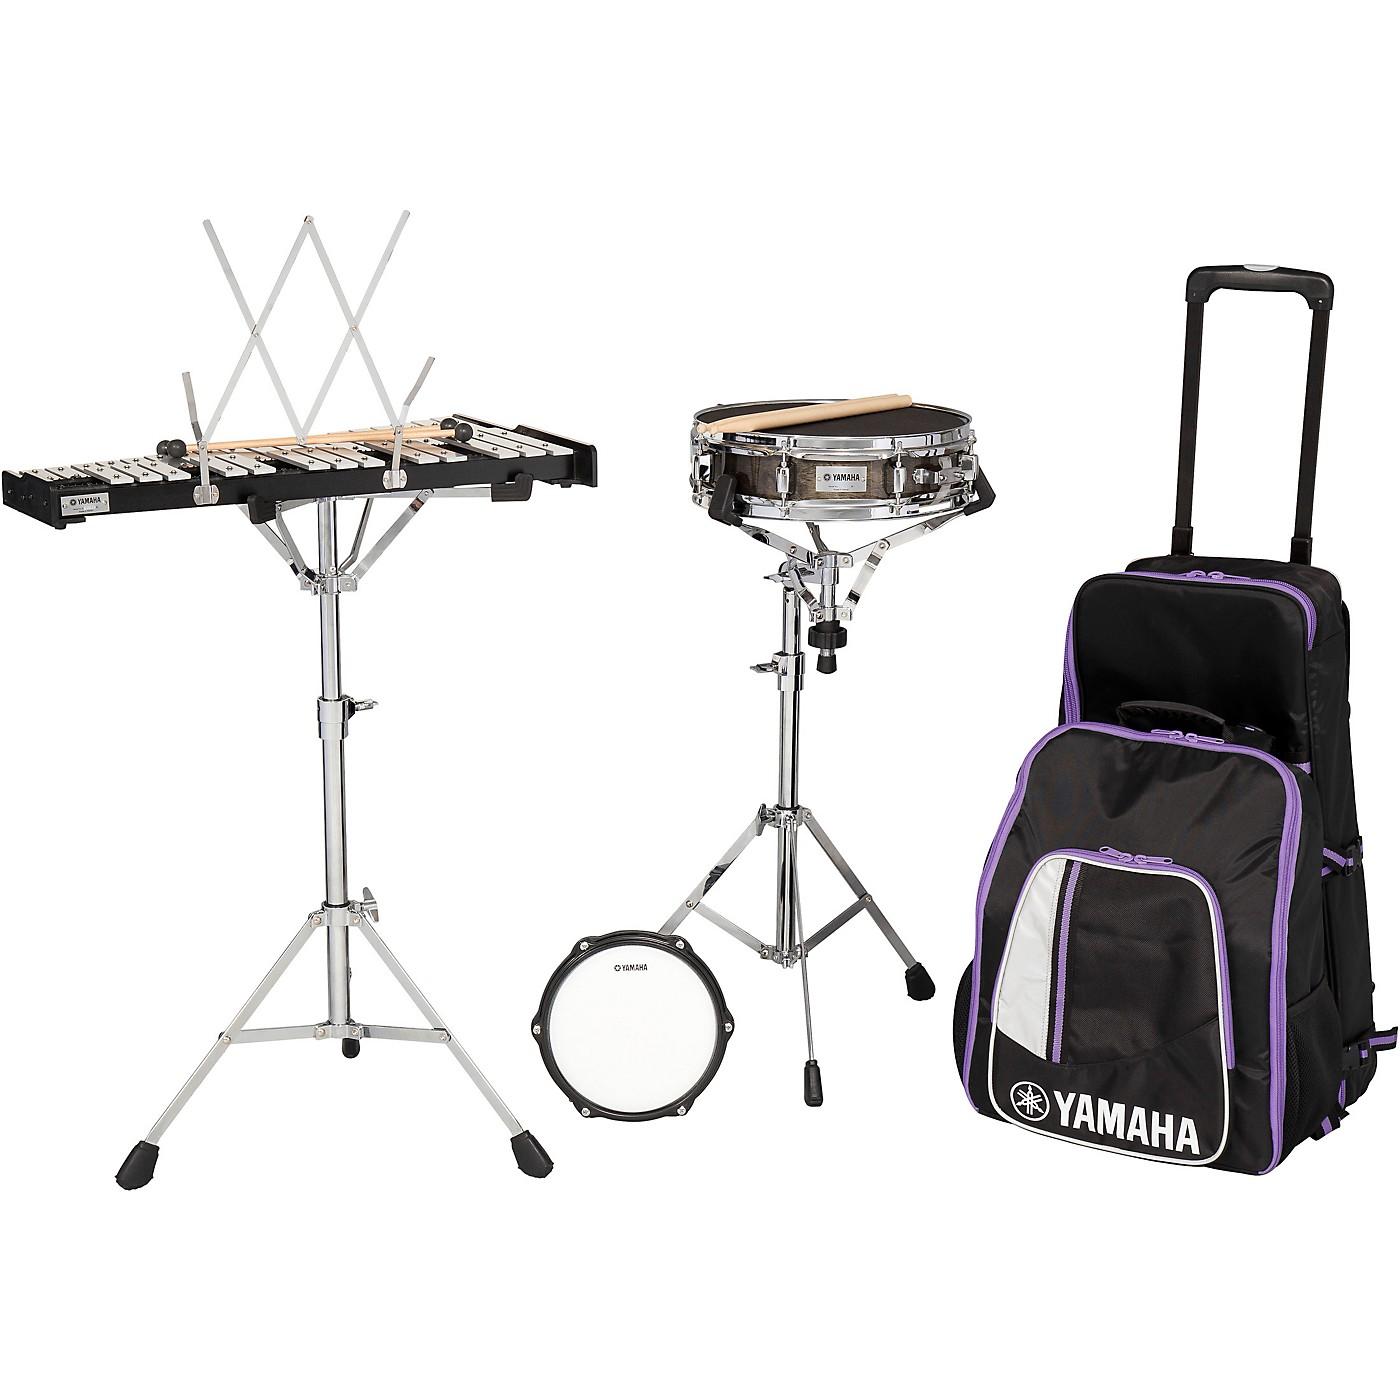 Yamaha 285 Series Mini Snare and Bell Kit with Backpack and Rolling Cart thumbnail